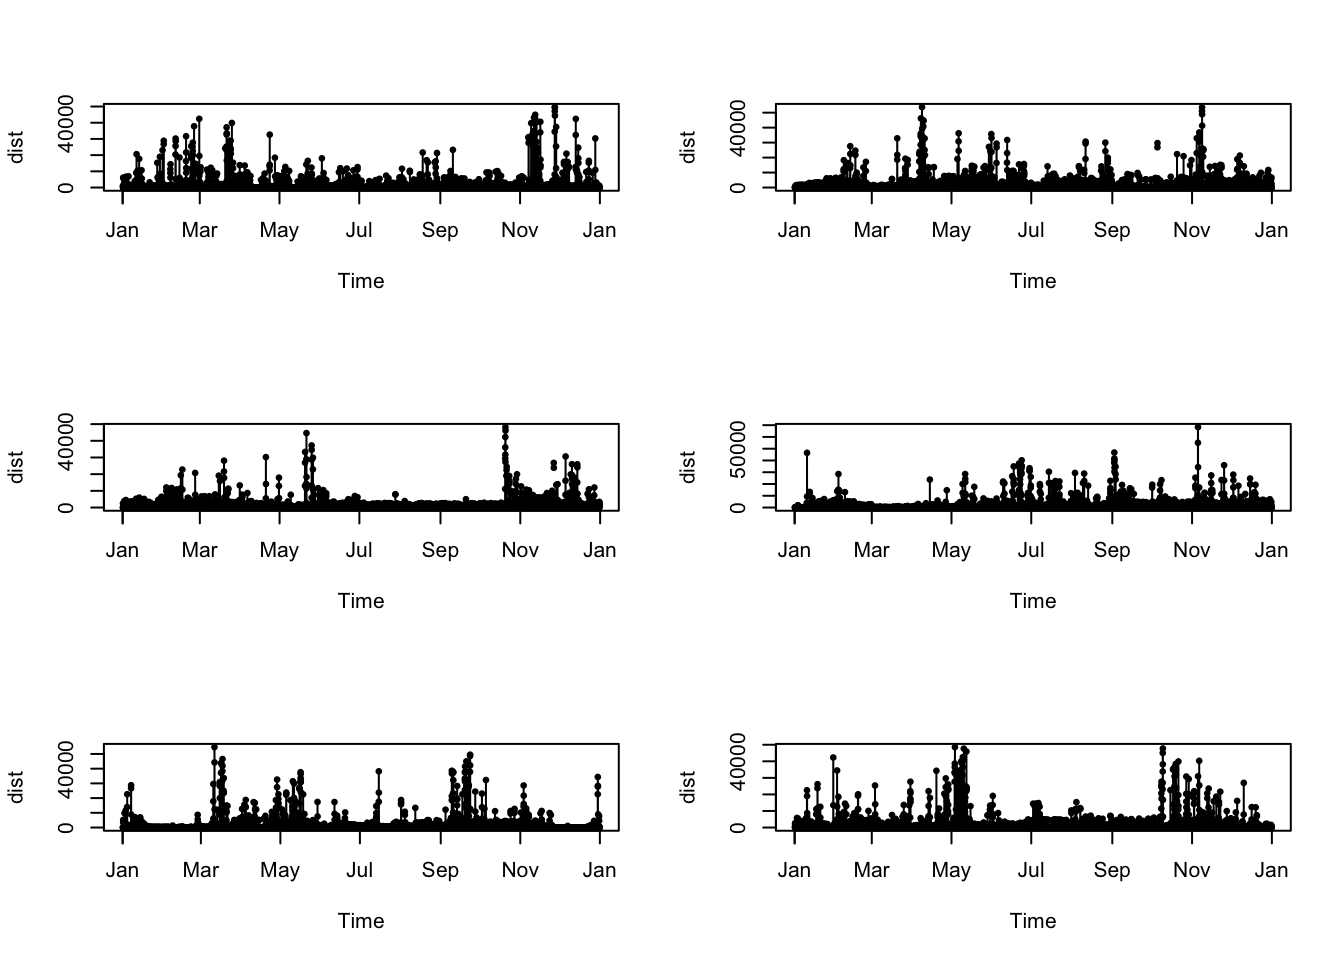 Wildlife tracking data in R